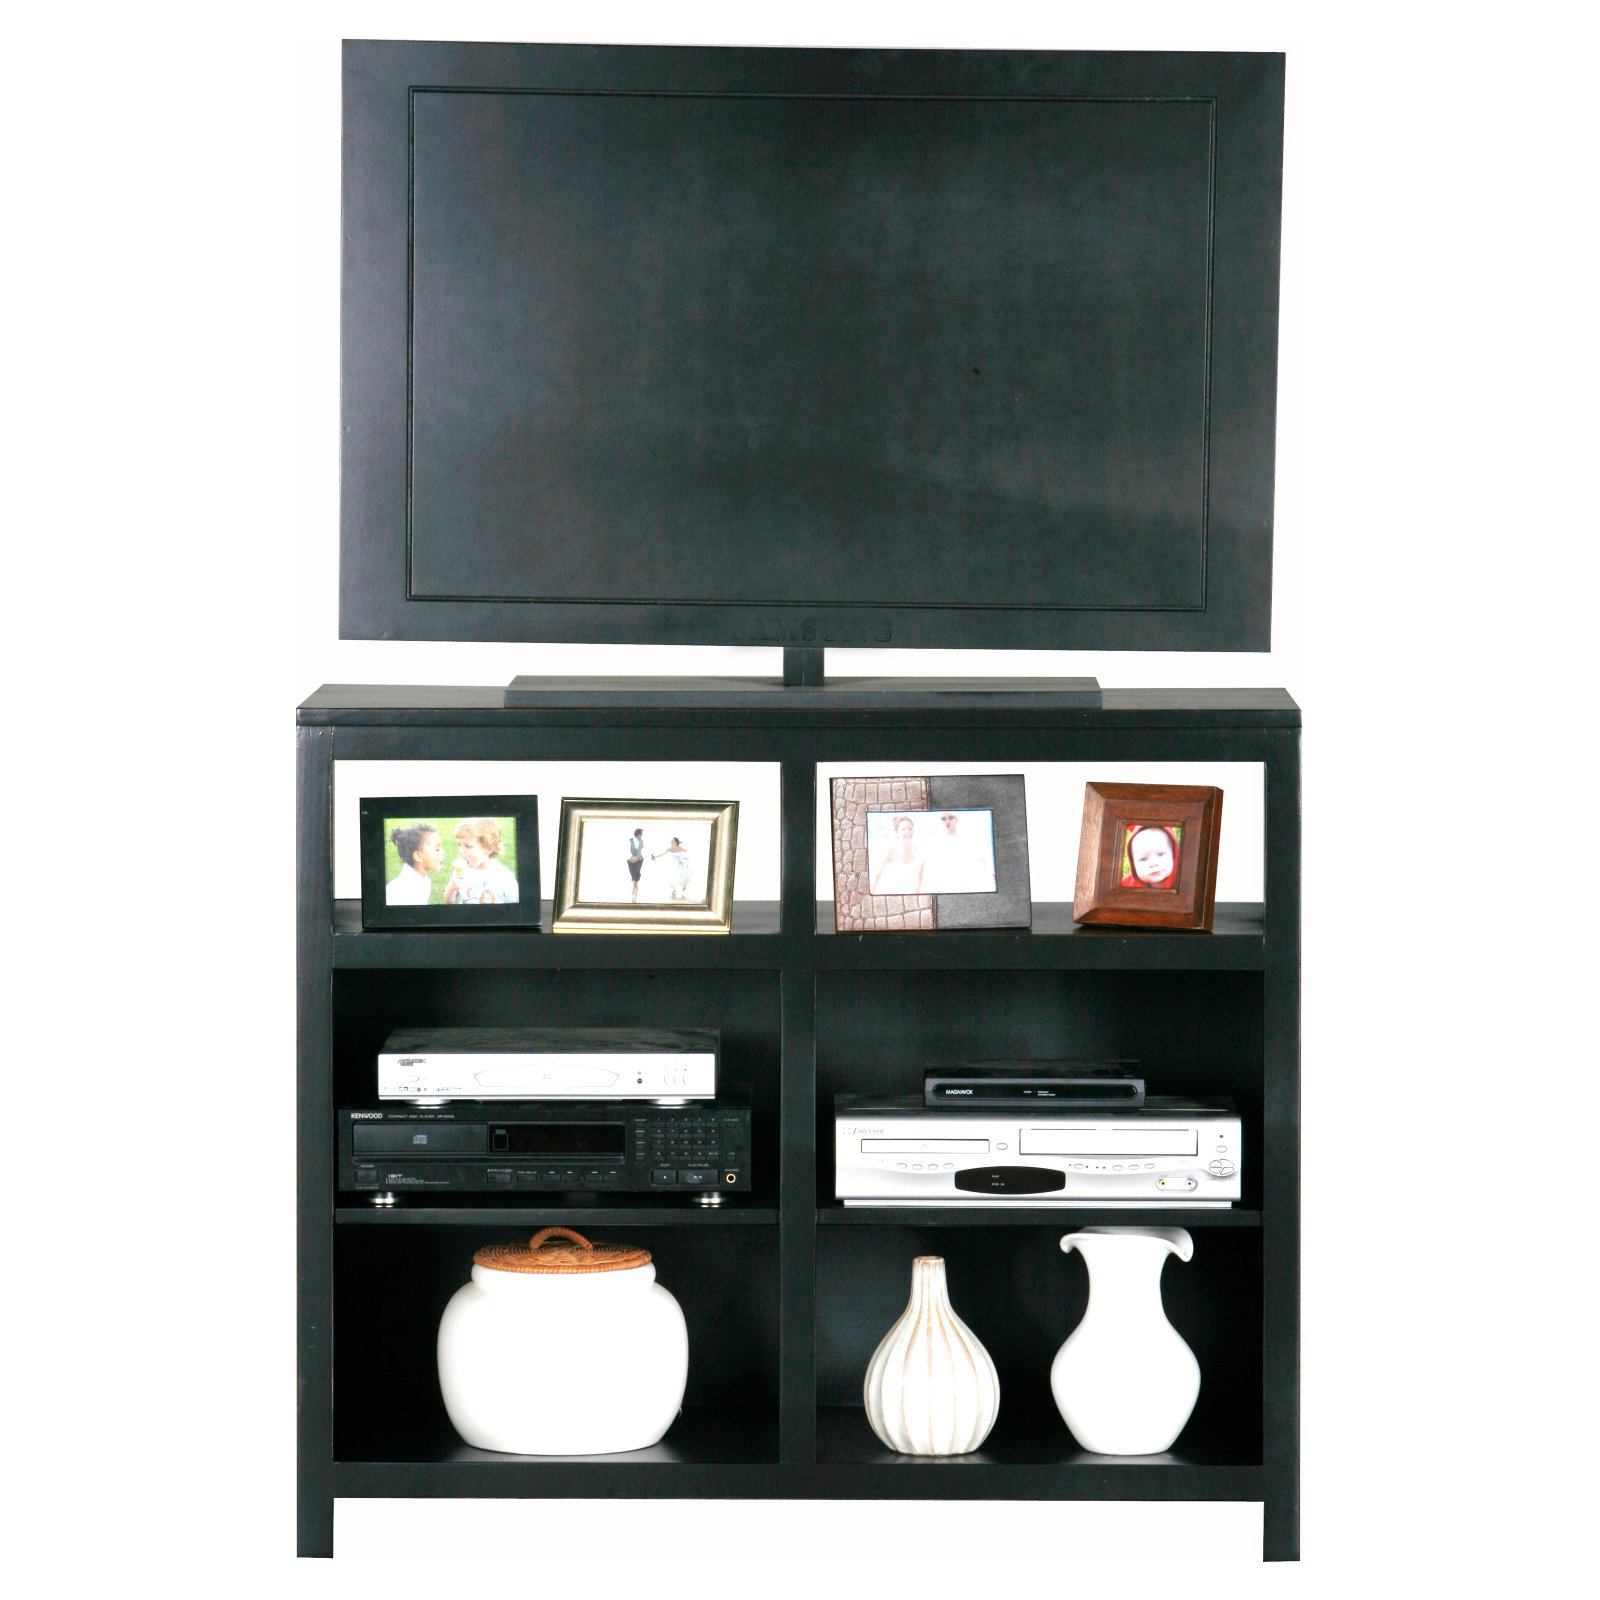 Eagle Furniture Adler Customizable 42 in. Tall TV Stand